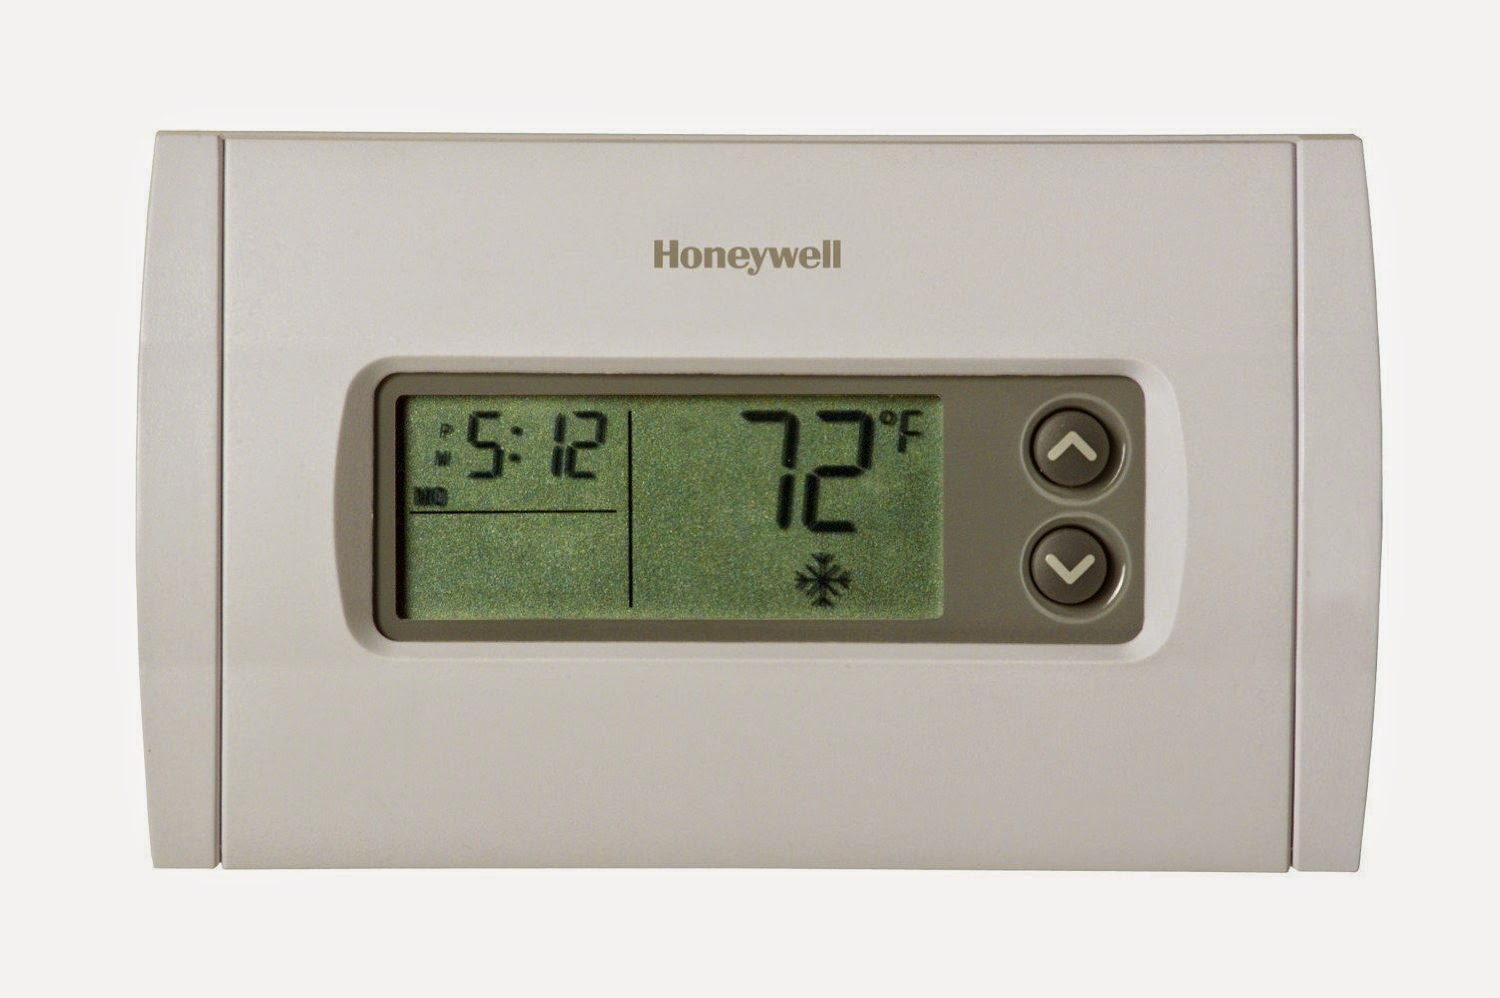 honeywell thermostat manual rth 230b companieskey free-wiring-diagrams.weebly.com mercedes free wire diagram weebly